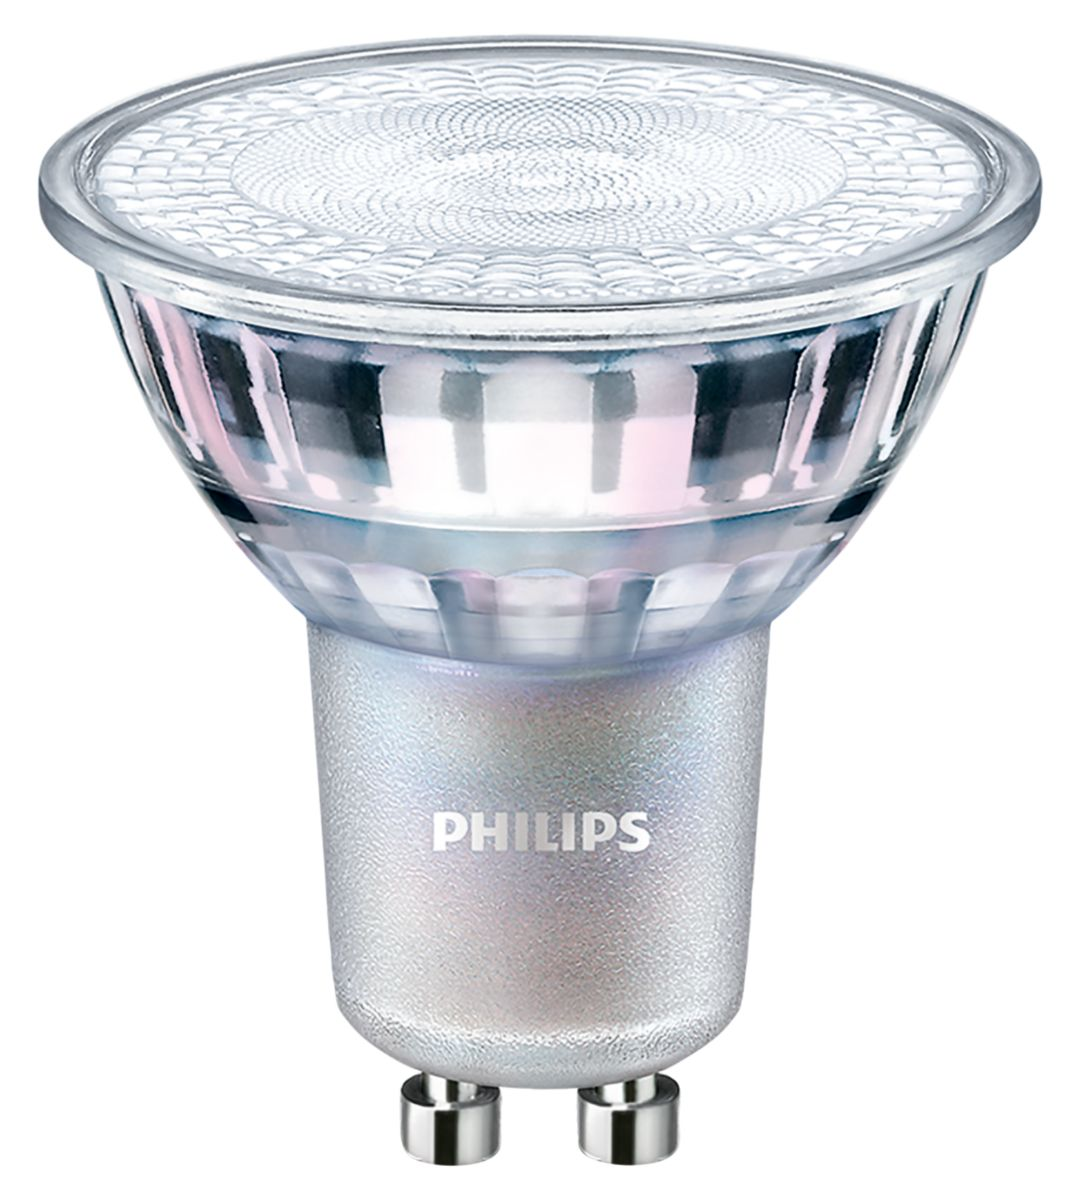 PHILIPS GU10 led lamp dimbaar 4.9W-50W warmwit 2700 kelvin 36gr CRI90